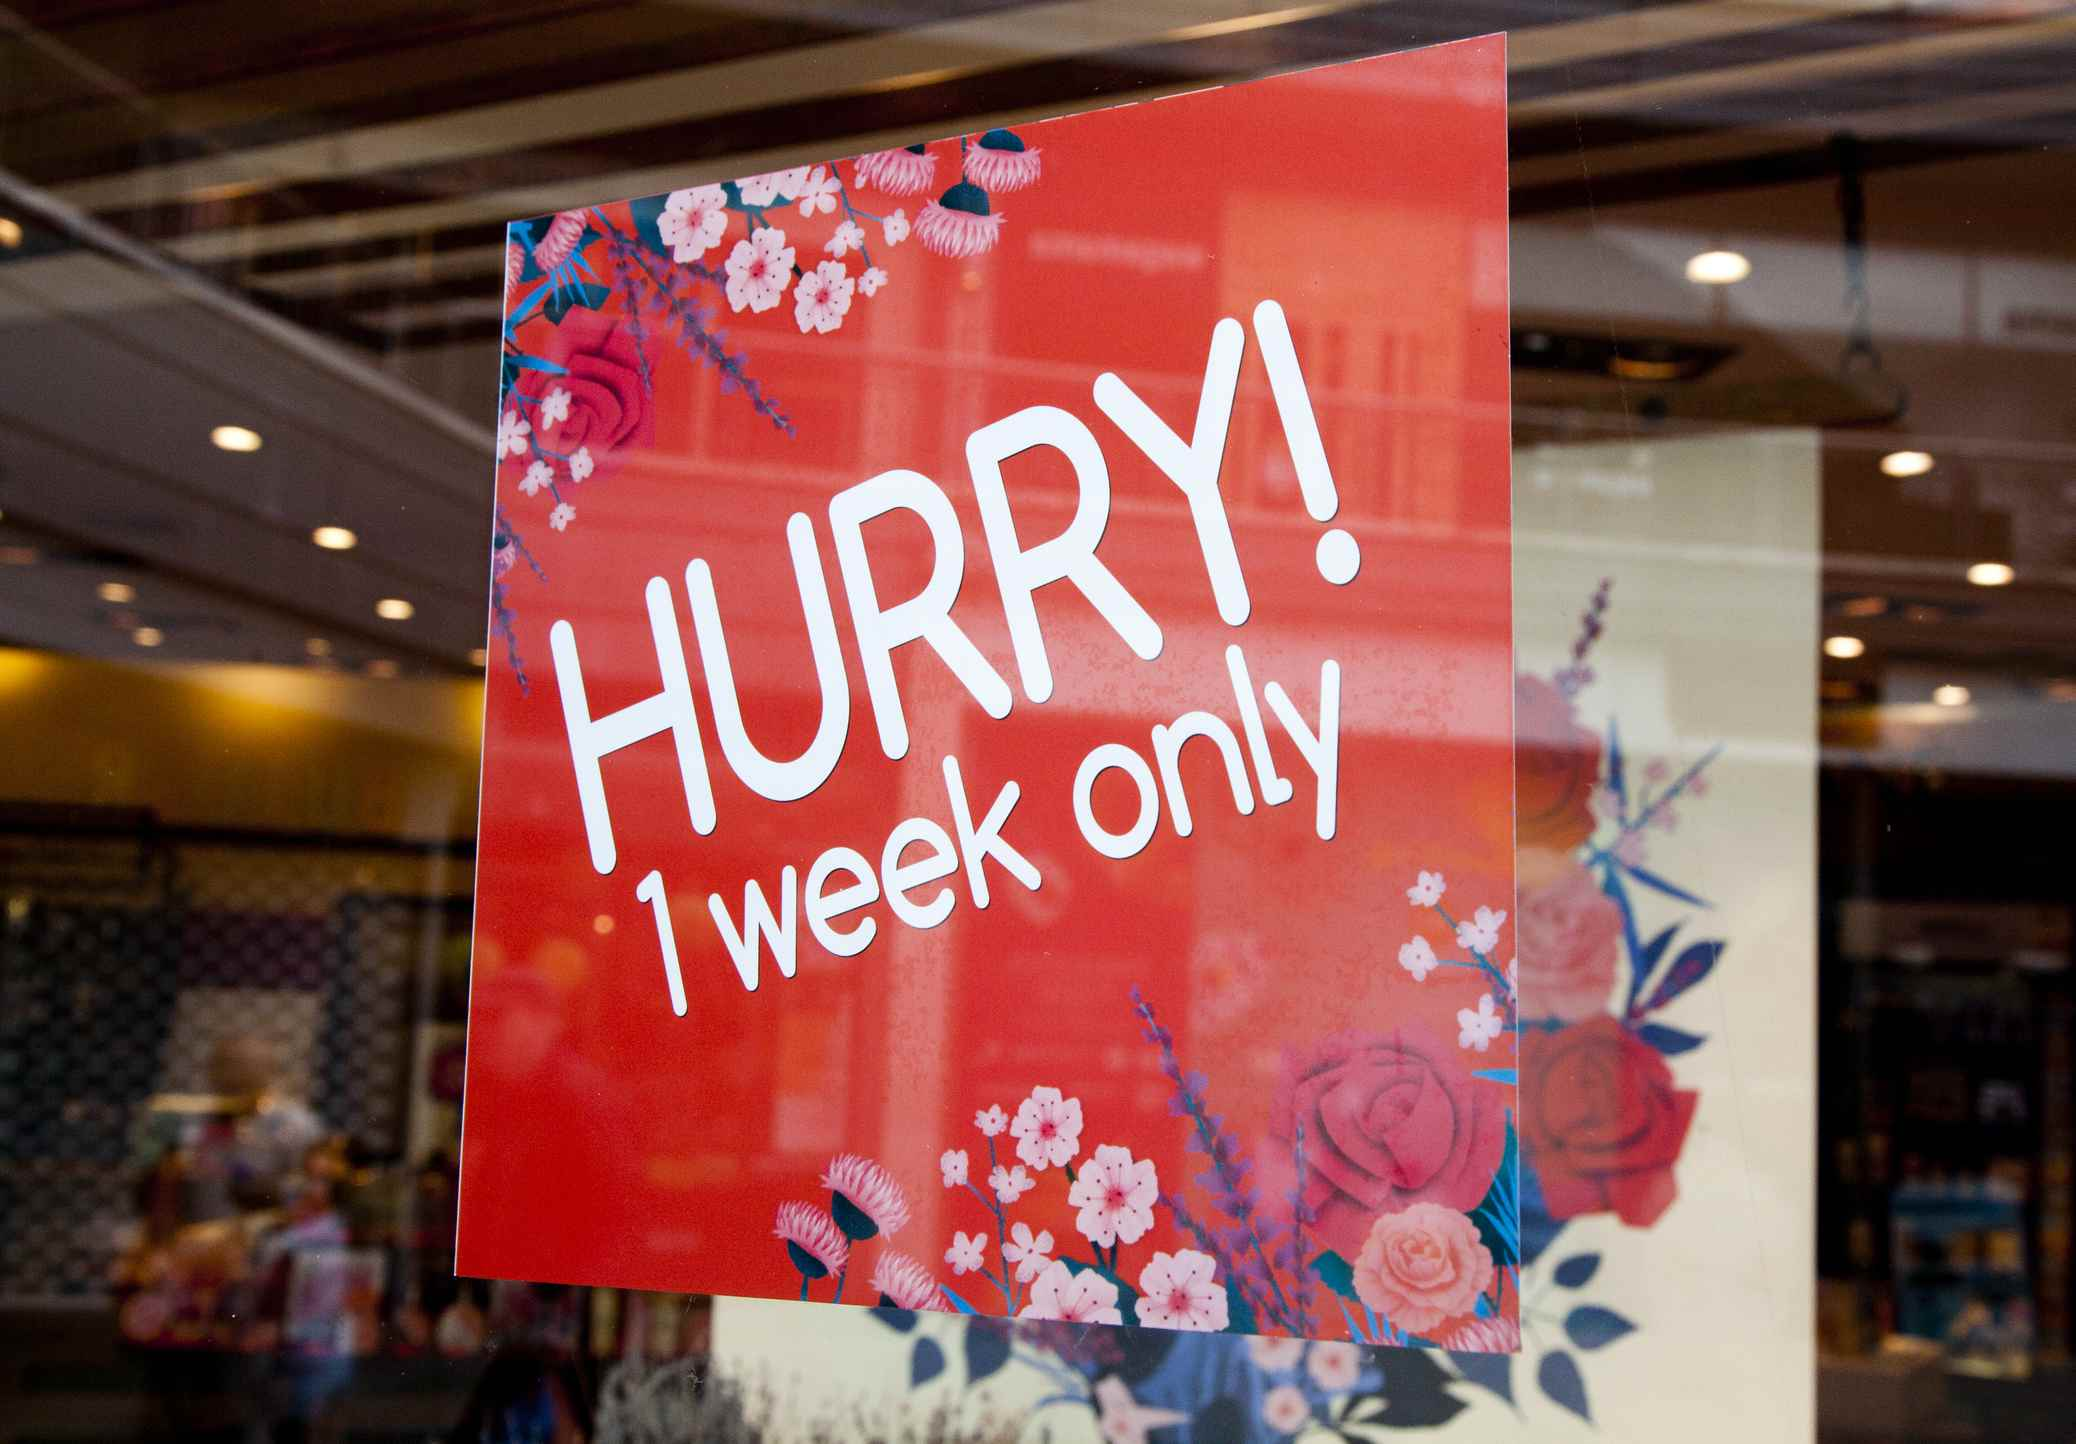 1 week only sale sign